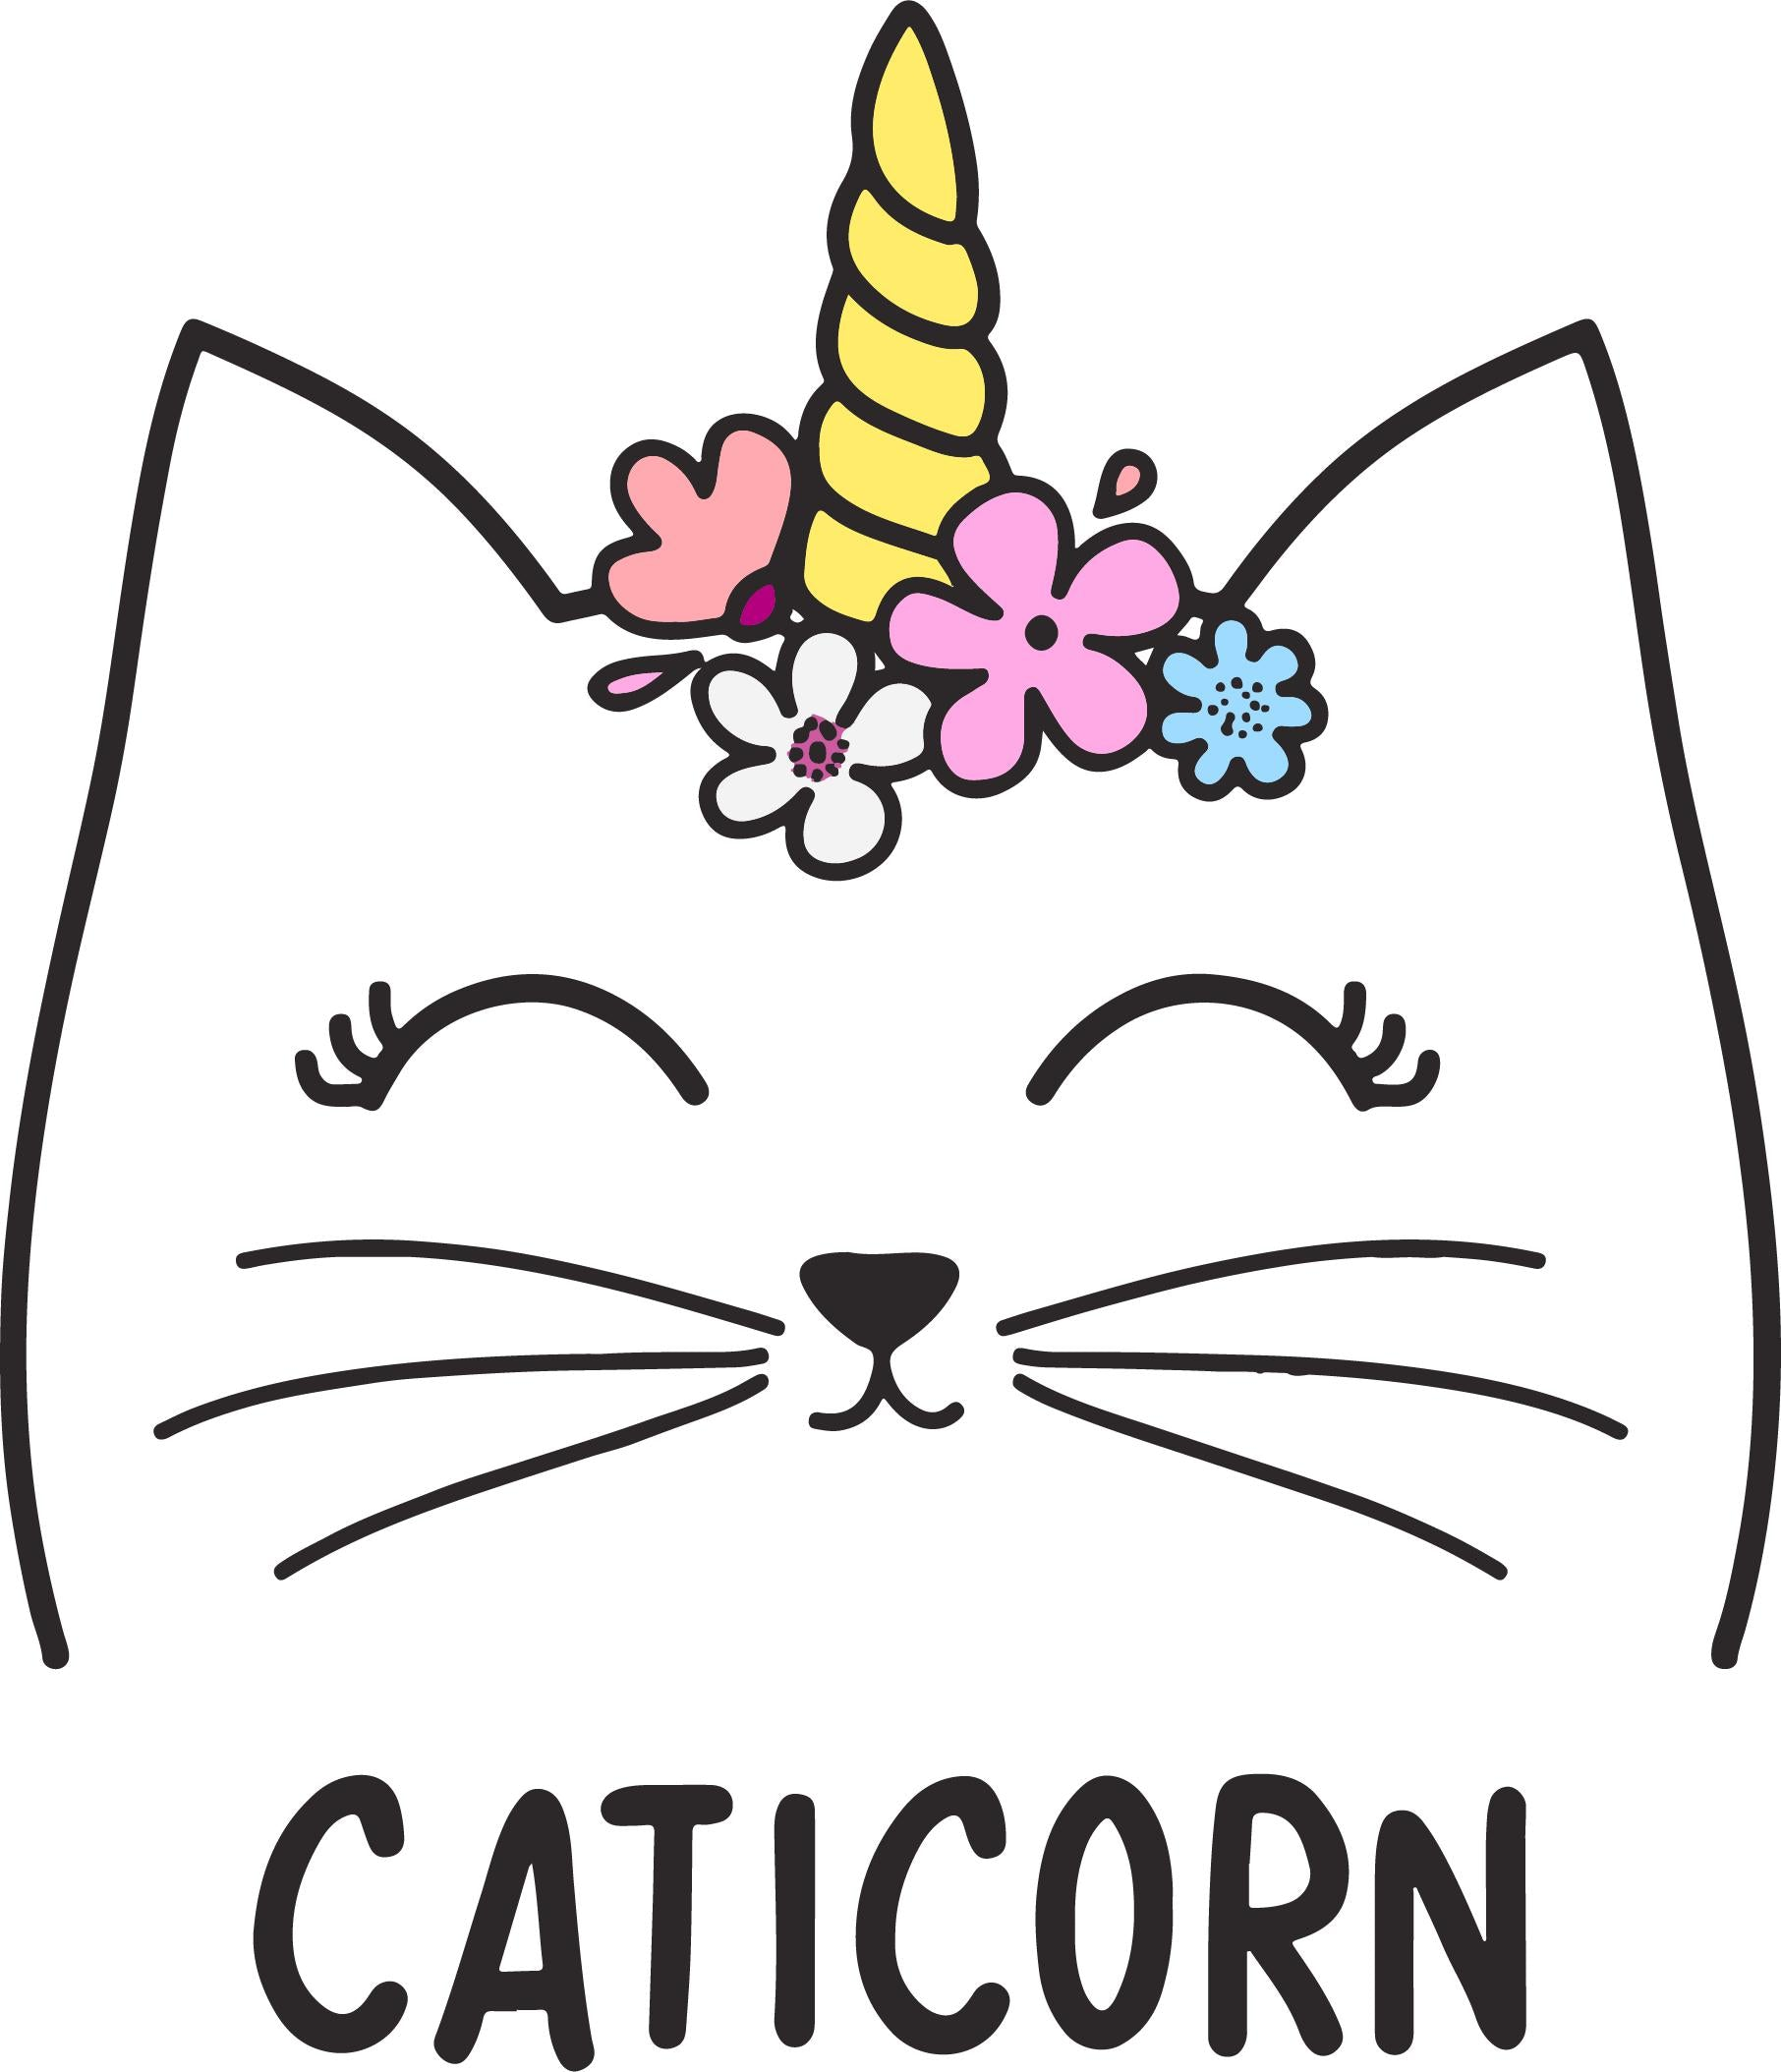 Caticorn Vinyl Cut Out